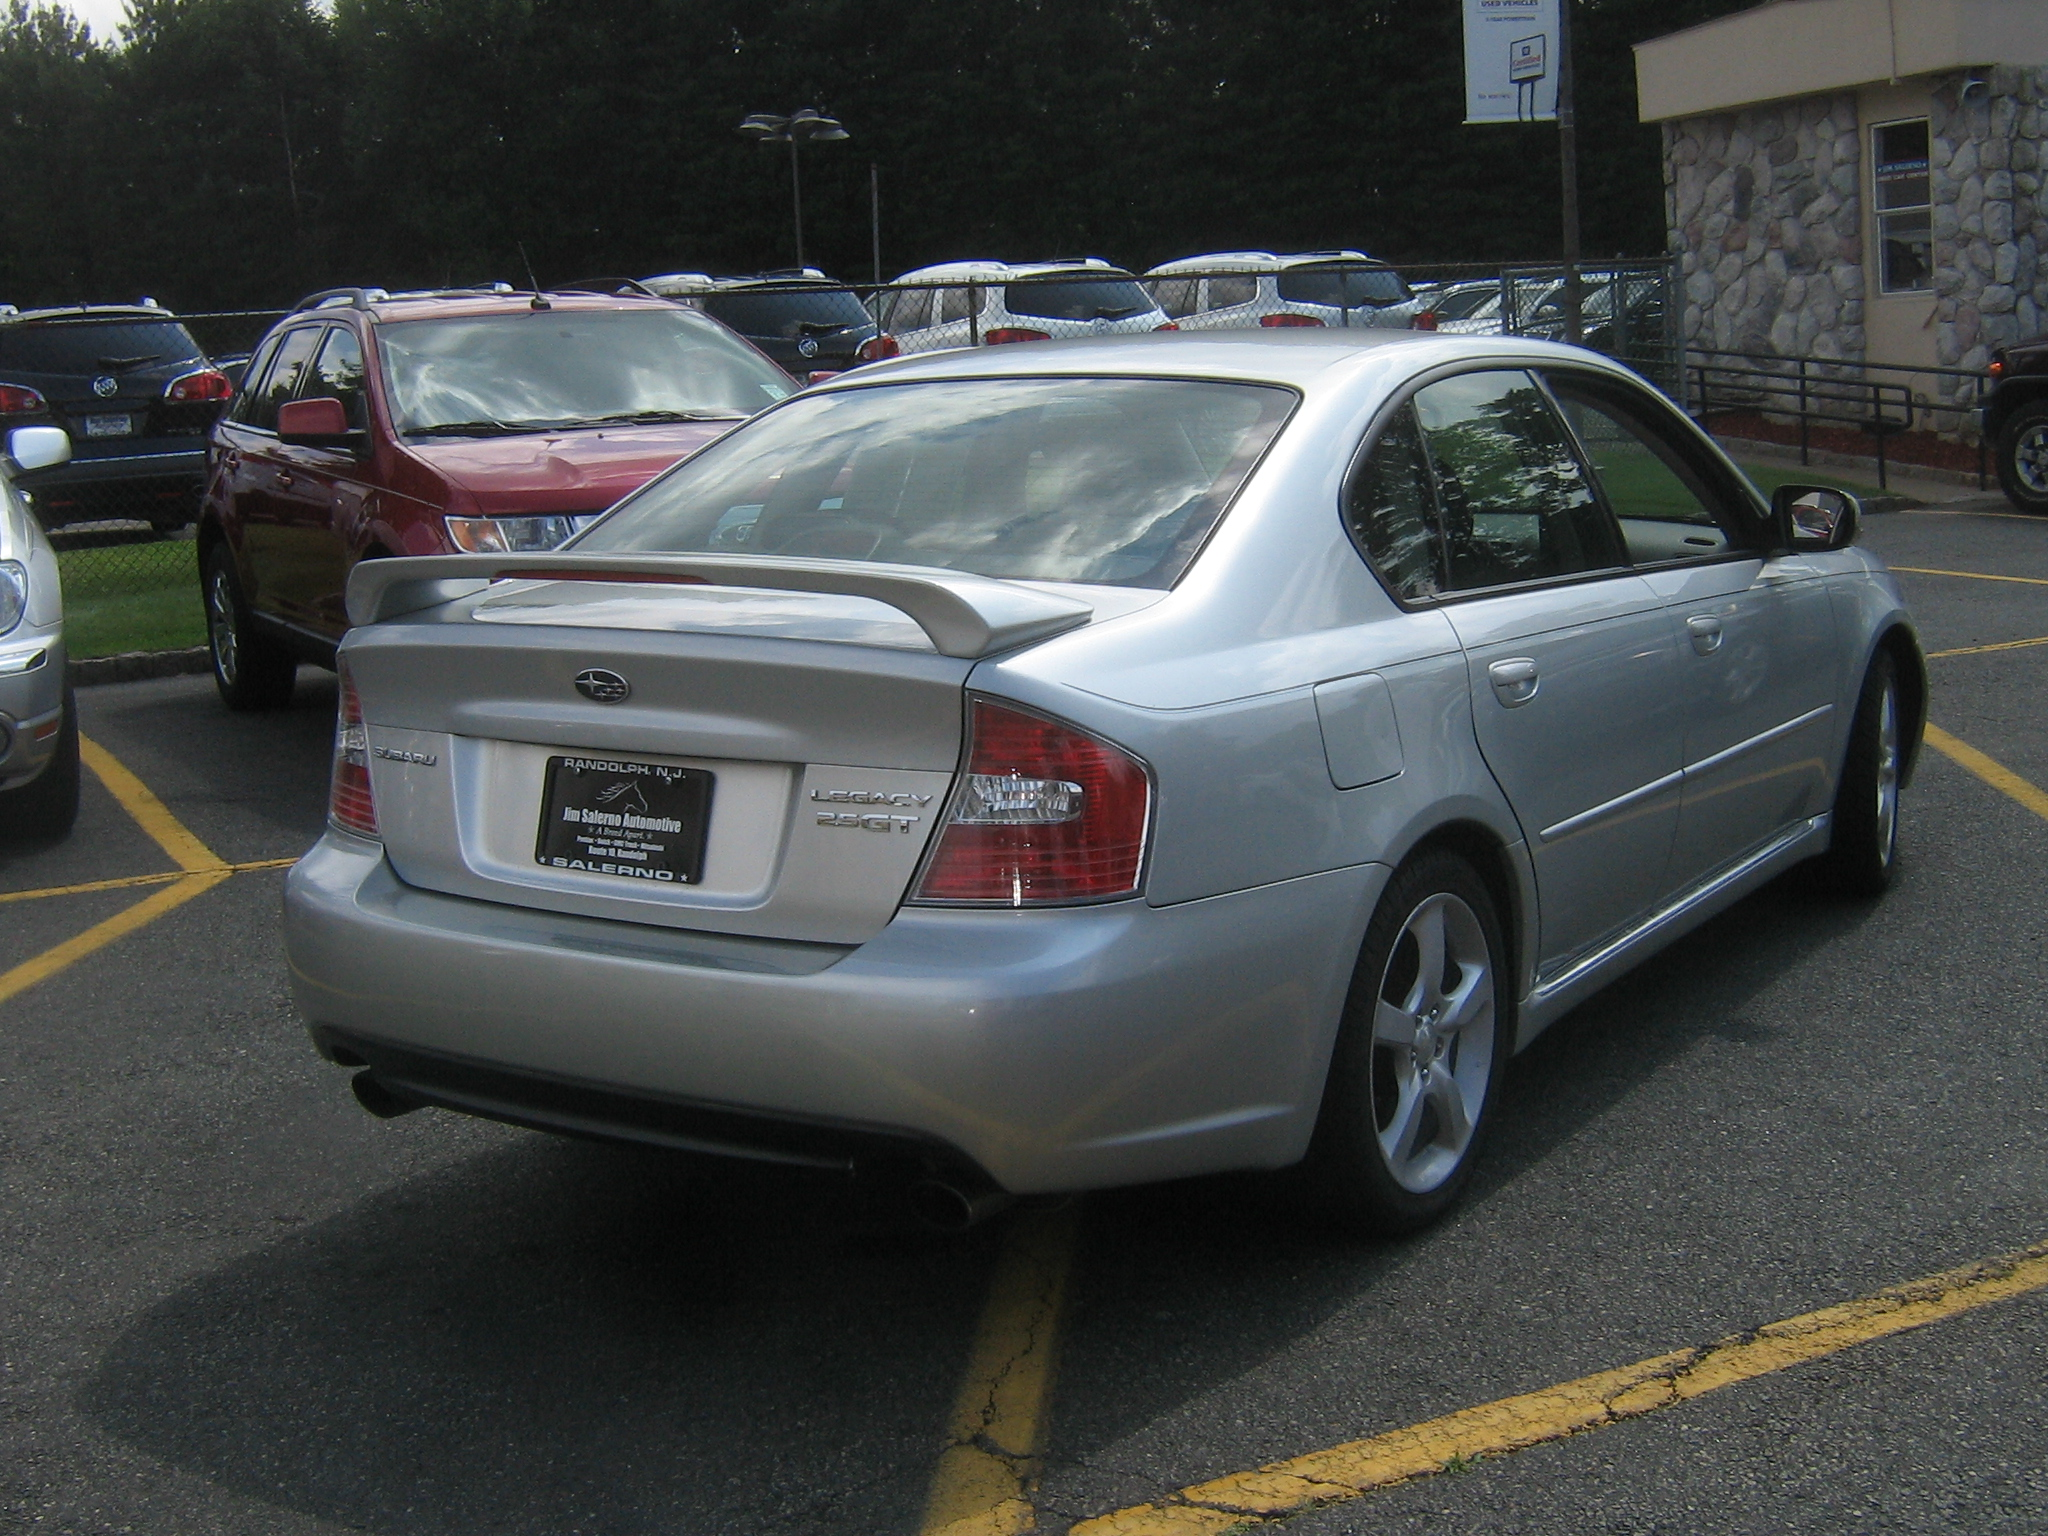 test driven: 2006 subaru legacy 2.5gt limited | mind over motor